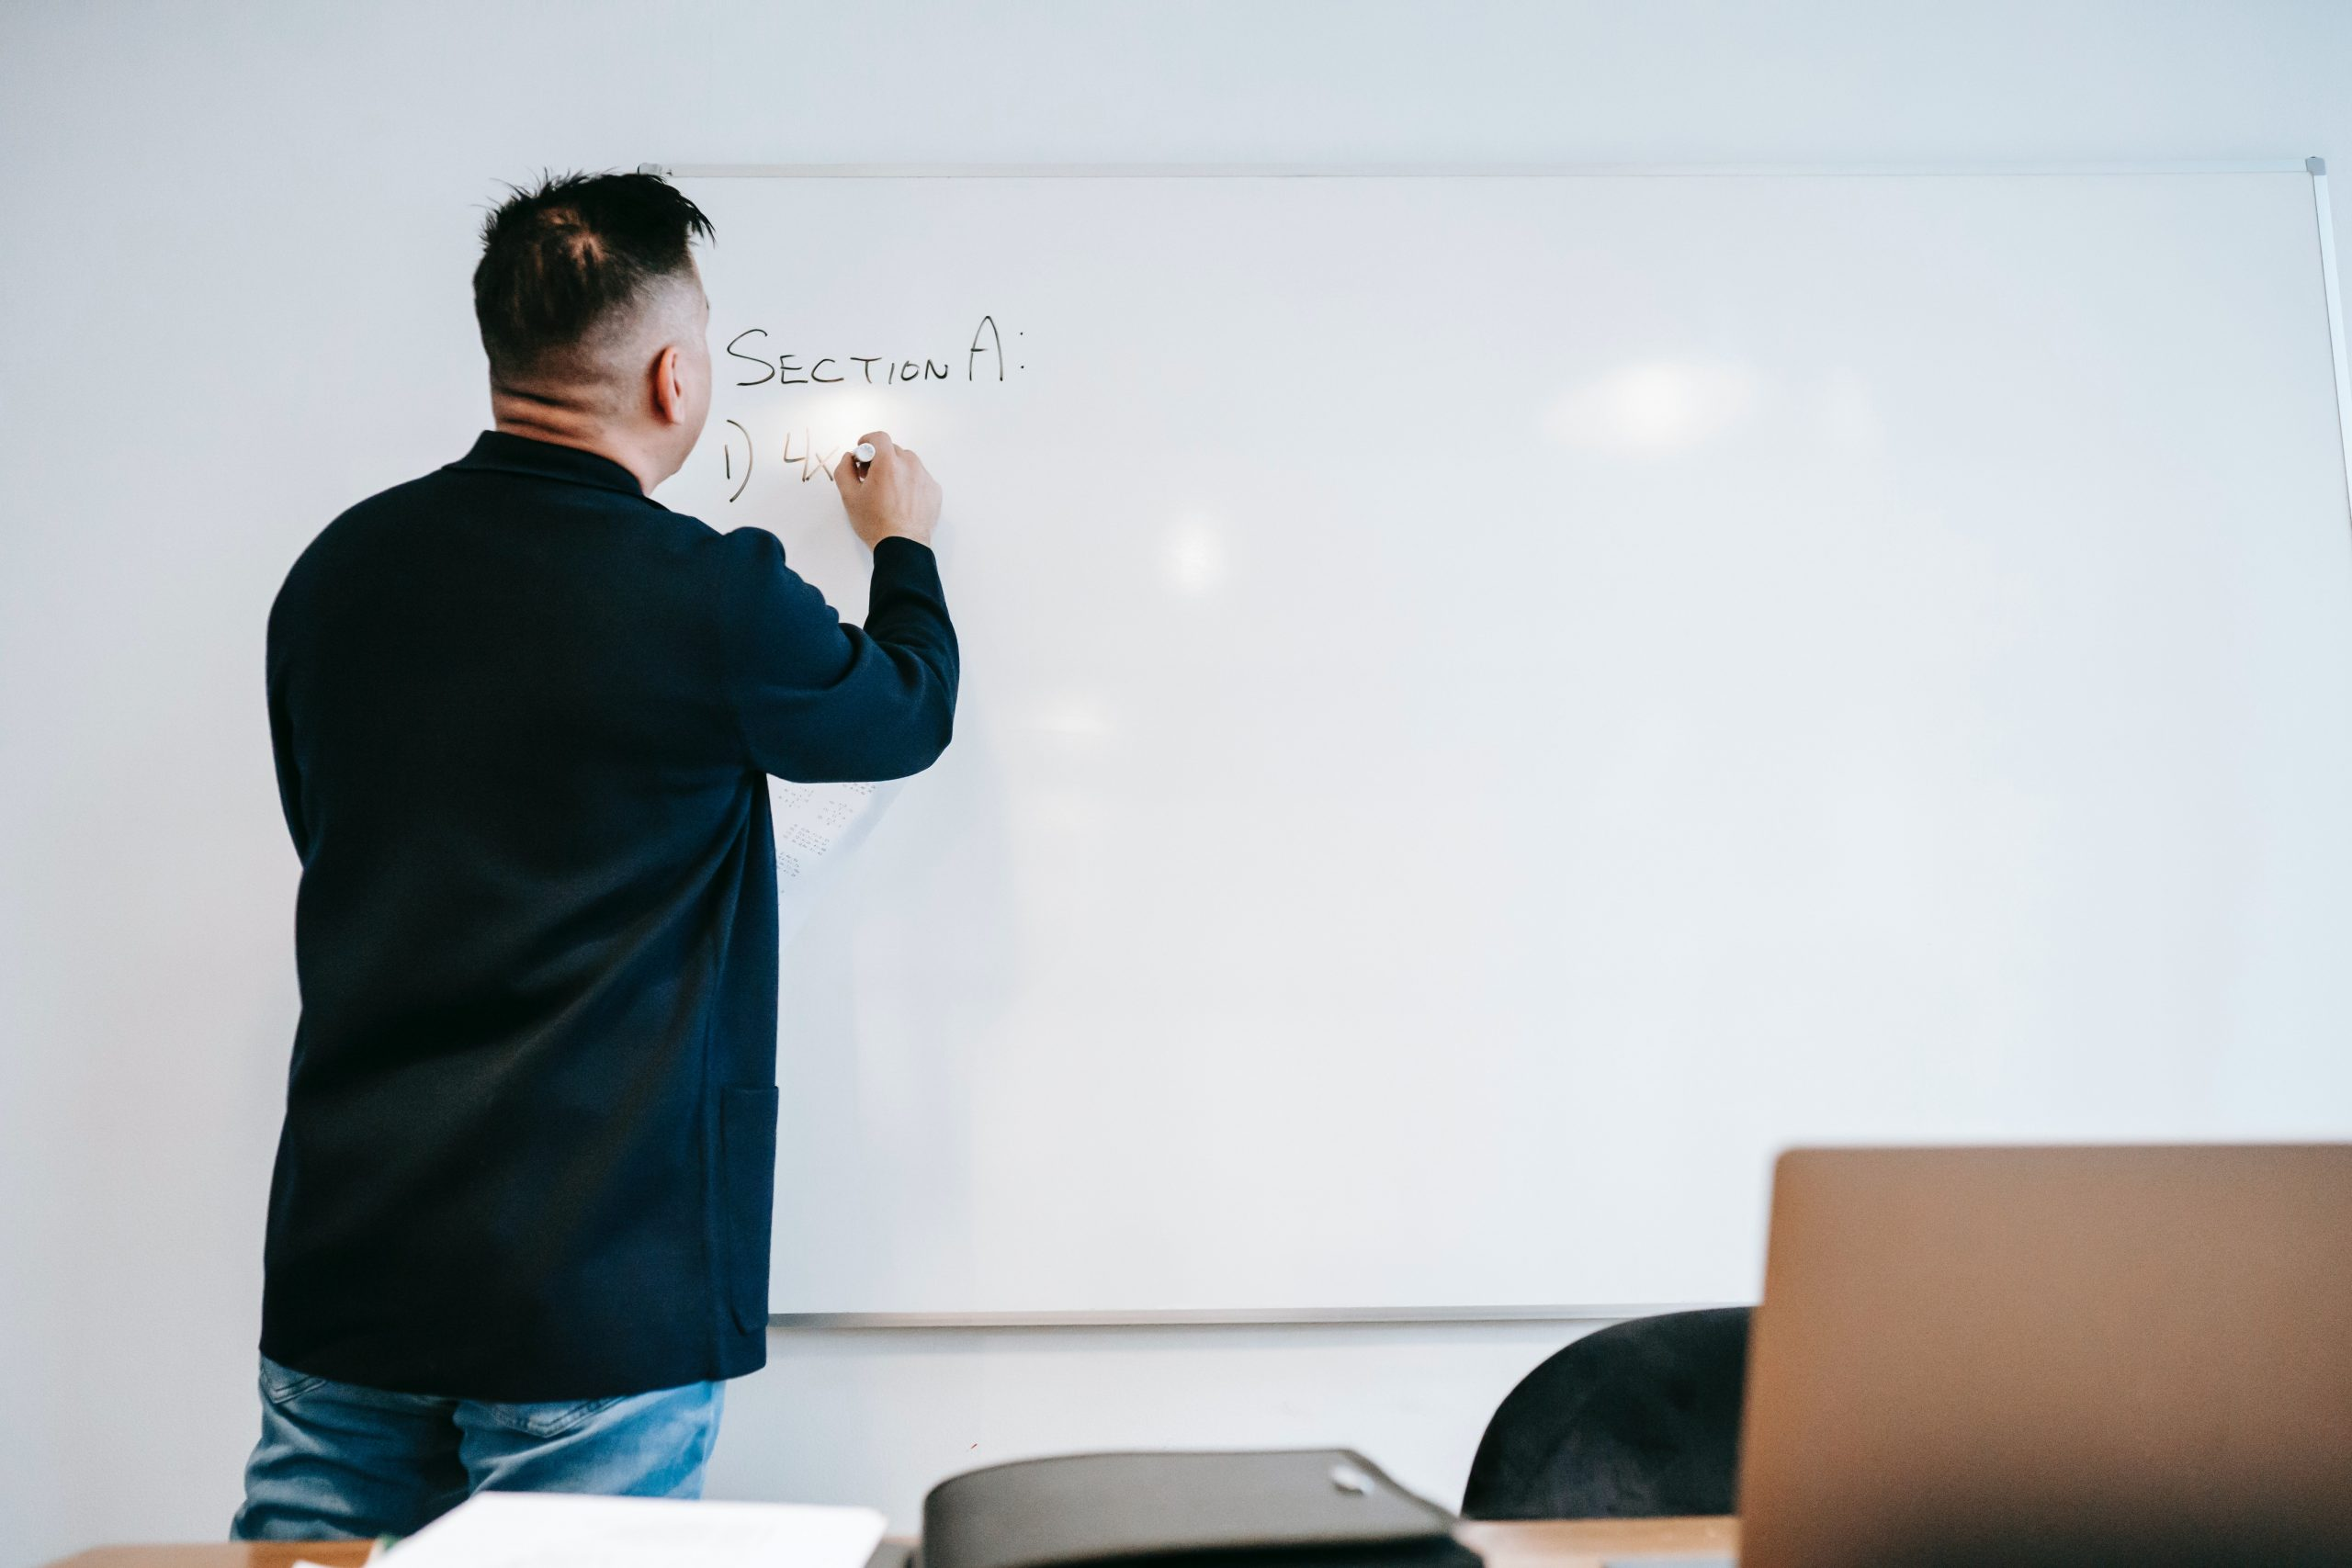 further-education-educator-lecturer-writing-on-the-board